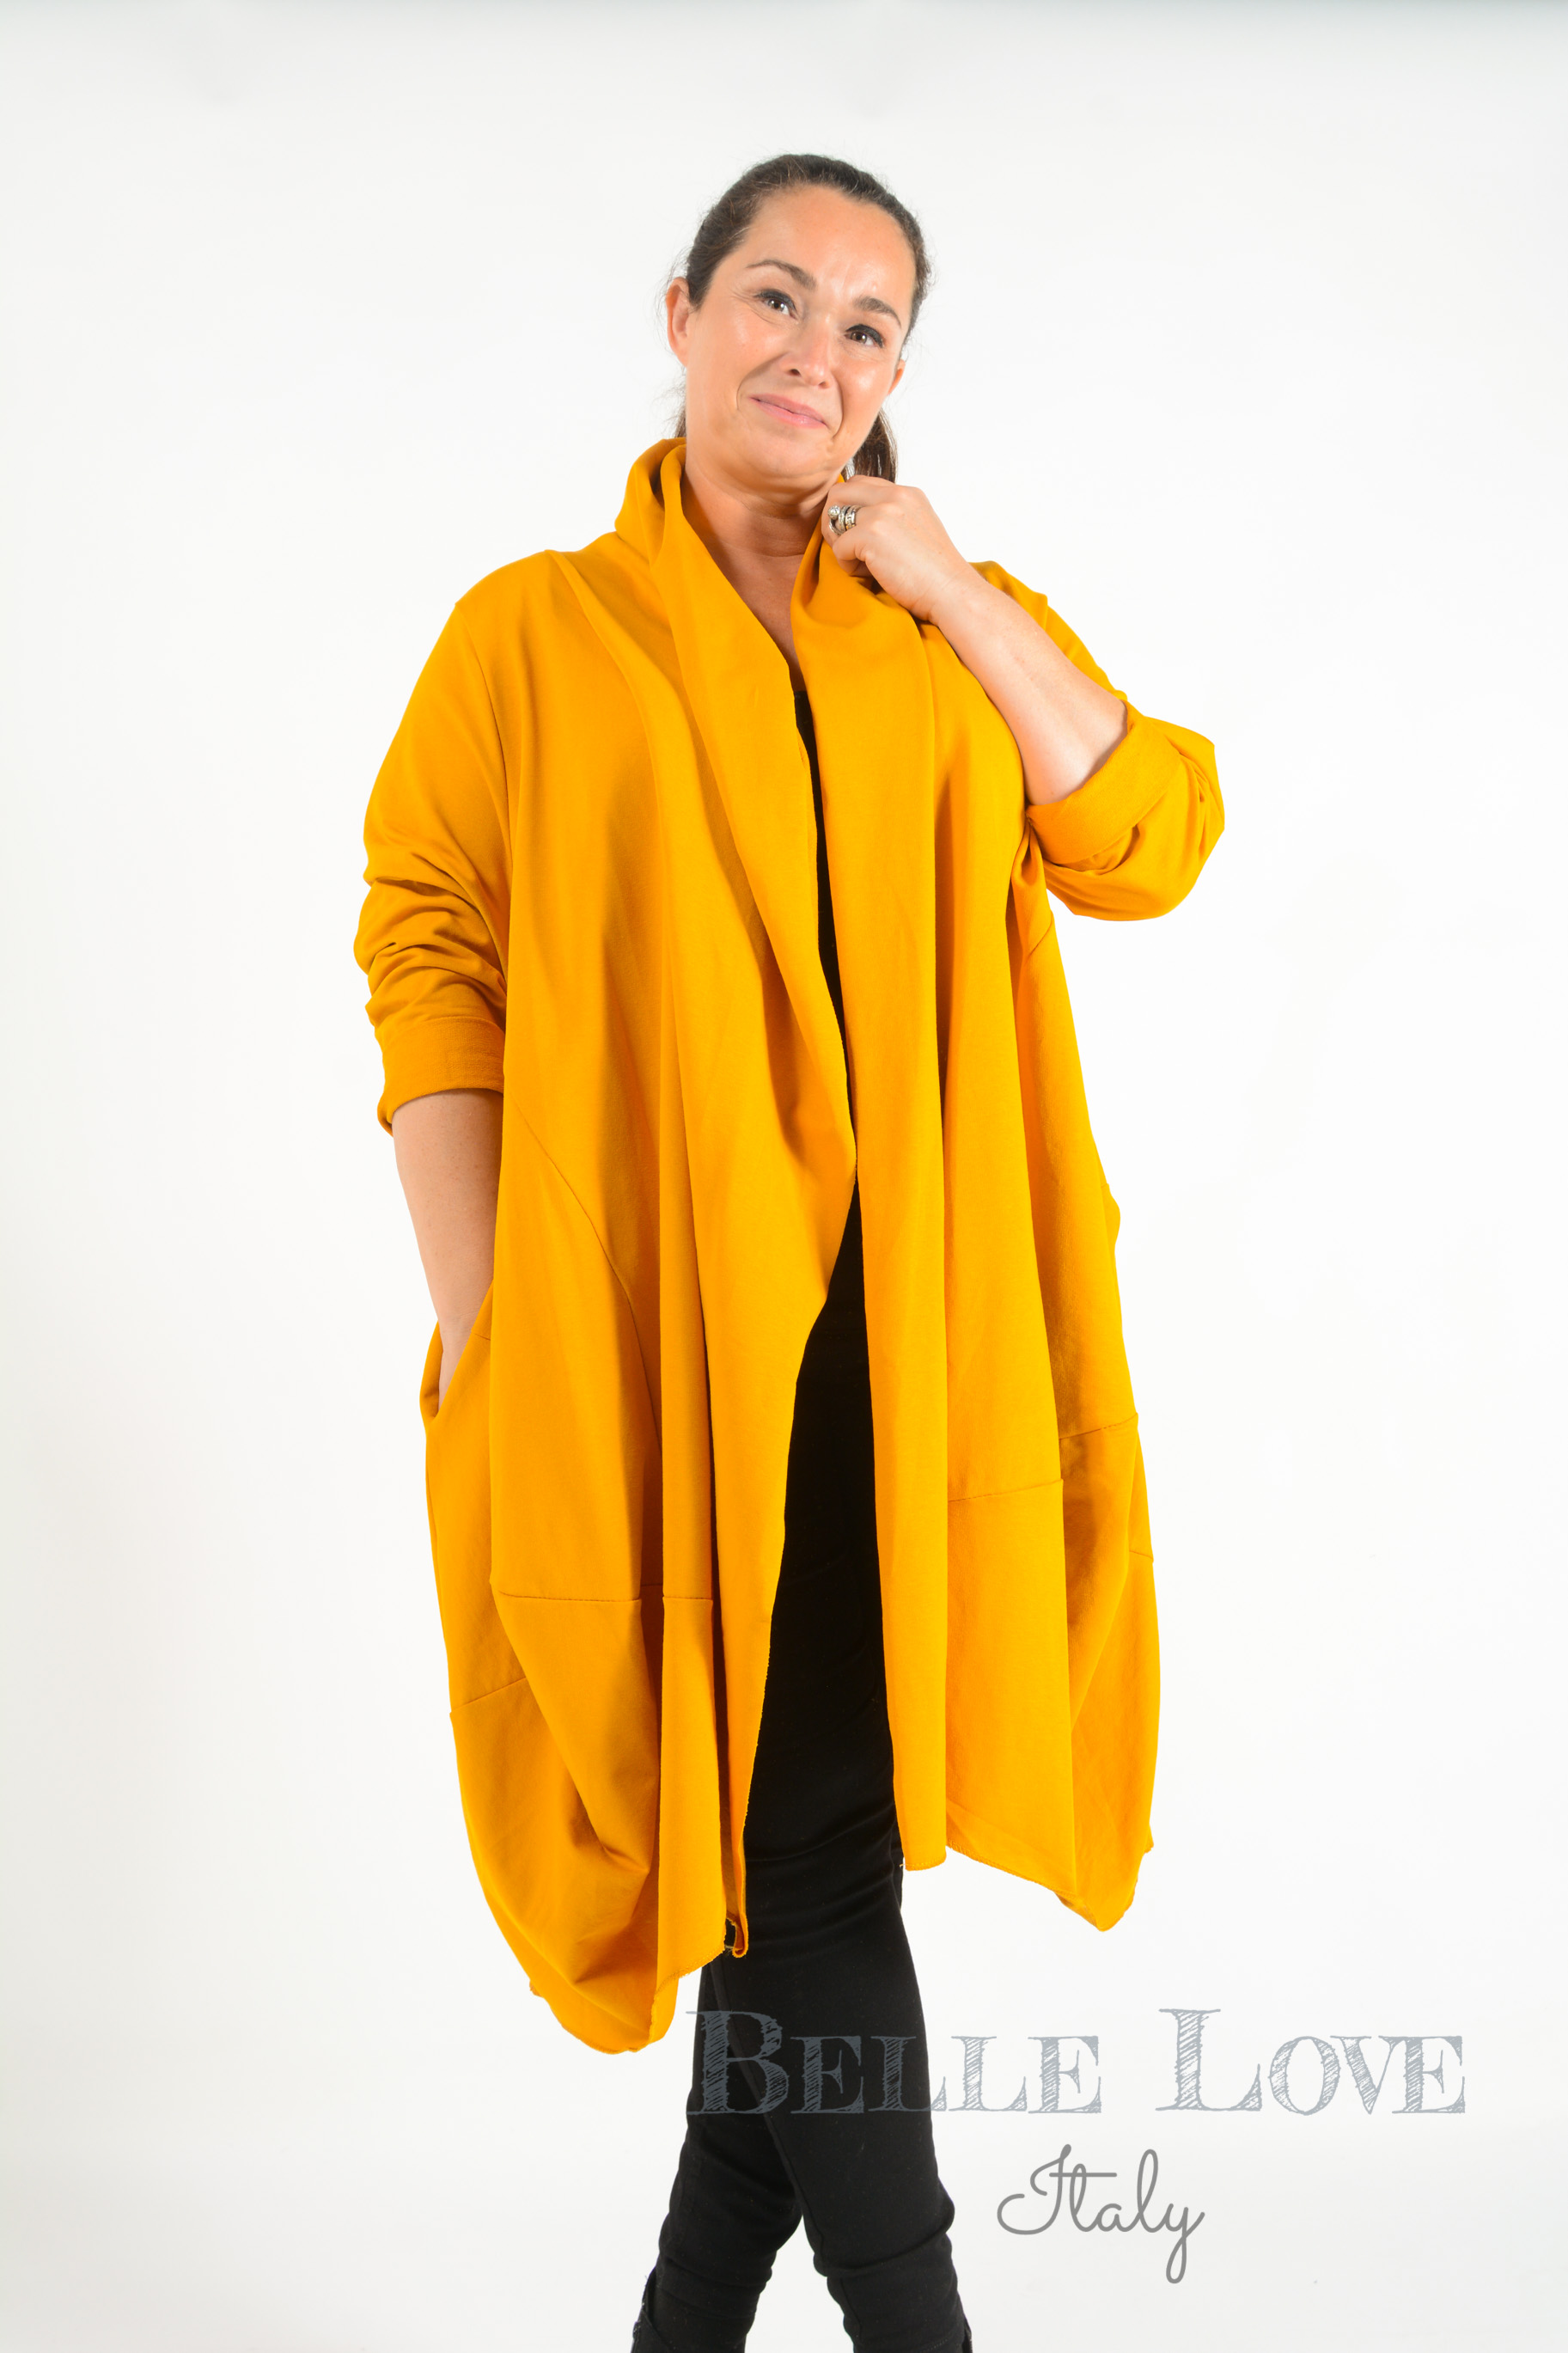 Belle Love Italy Willow Open Front Jacket/Cardigan